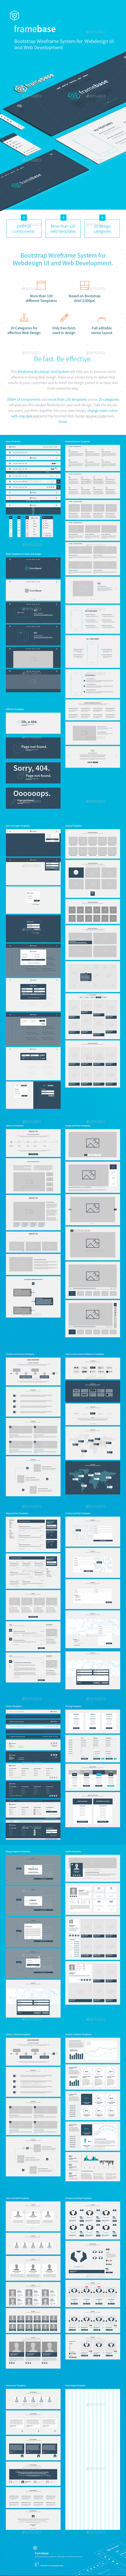 Wireframe Ui Kit - User Interfaces Web Elements